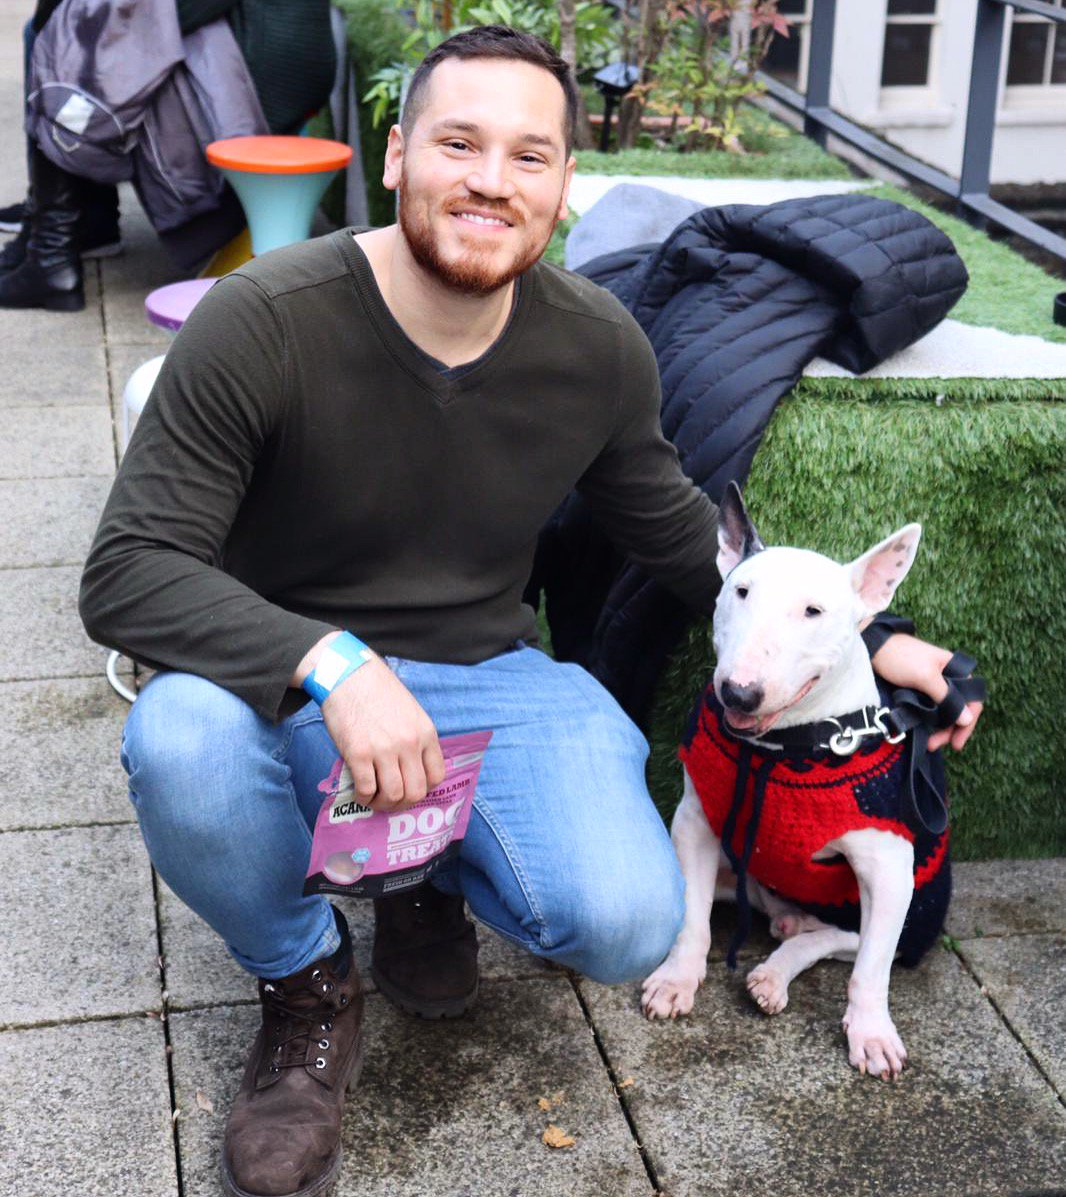 Squeezing every last inch of the London sunshine (it was  )at the rooftop of the London Dogs of Instagram event! . . . #DogsOfTwitter #dogsofinsta #dogs #dog #puppers #puppy #dogsofinstagram #bullterrier #bullterriers #bullies<br>http://pic.twitter.com/GOB3yjWtLJ